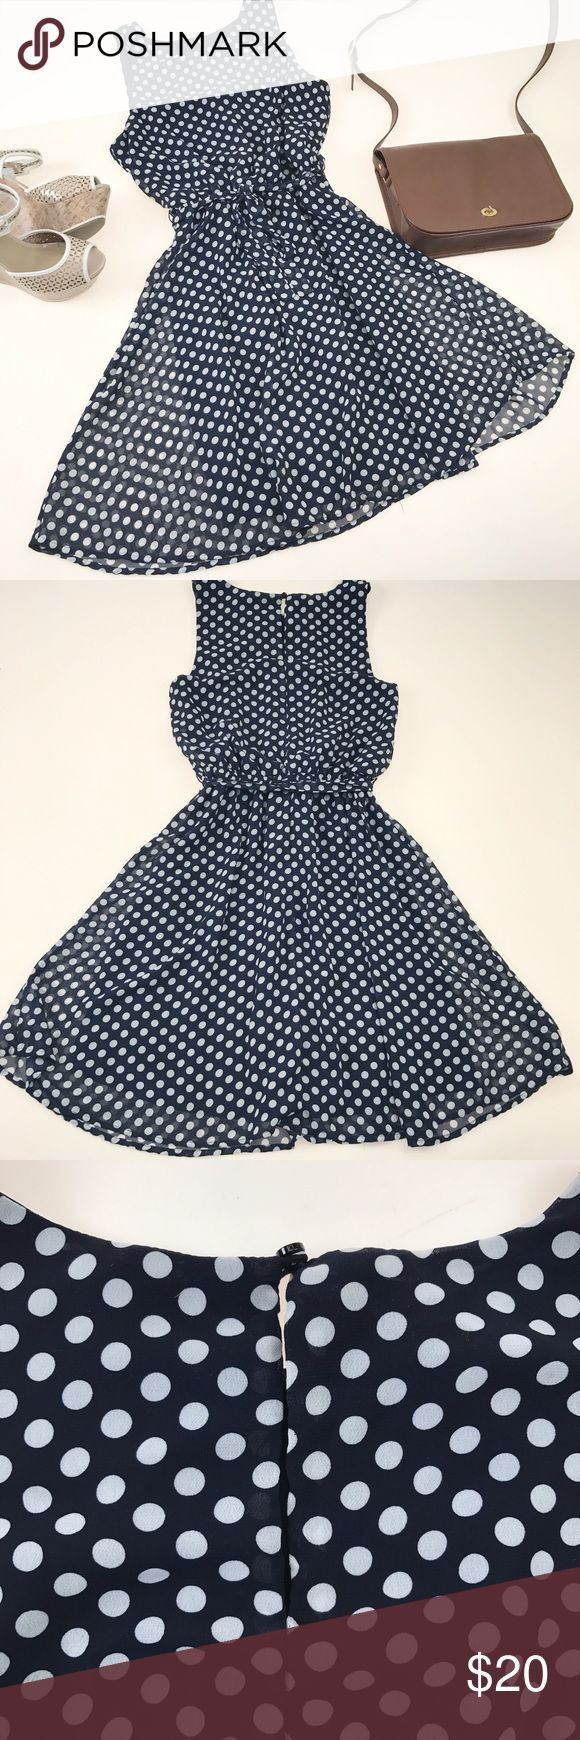 Navy and White Polka Dot Swing Dress with Tie This stunning dress features a tie around the waist and an elegant flow skirt.    The material is light and nearly transparent over a built in slip. Lightly worn, there is some minor wear to the underarm, but this dress comes in good used condition.  The measurements shown are (in order) length, bust, and waist (flat lying, double for around.) The waist is elastic and leaves much much room for stretch.   🍑 Send any offer (even lowballs!) and I…